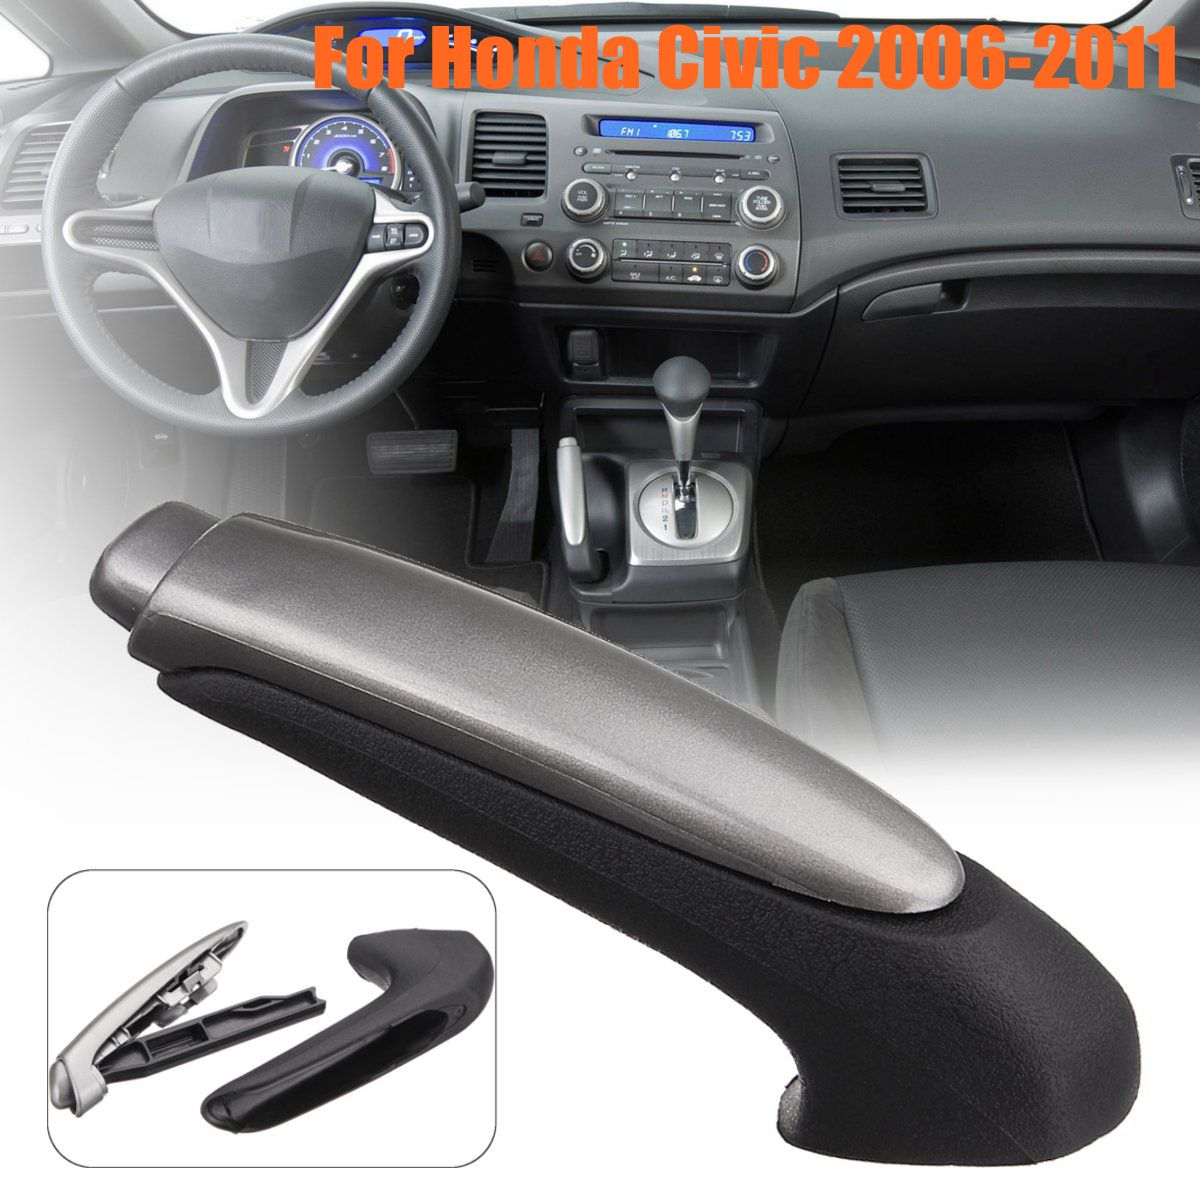 Car Handle Grip Covers Parking Hand Brake Handle Sleeve Protector Interior Accessories for <font><b>Honda</b></font> for <font><b>Civic</b></font> 2006 <font><b>2007</b></font> 2008 -2011 image